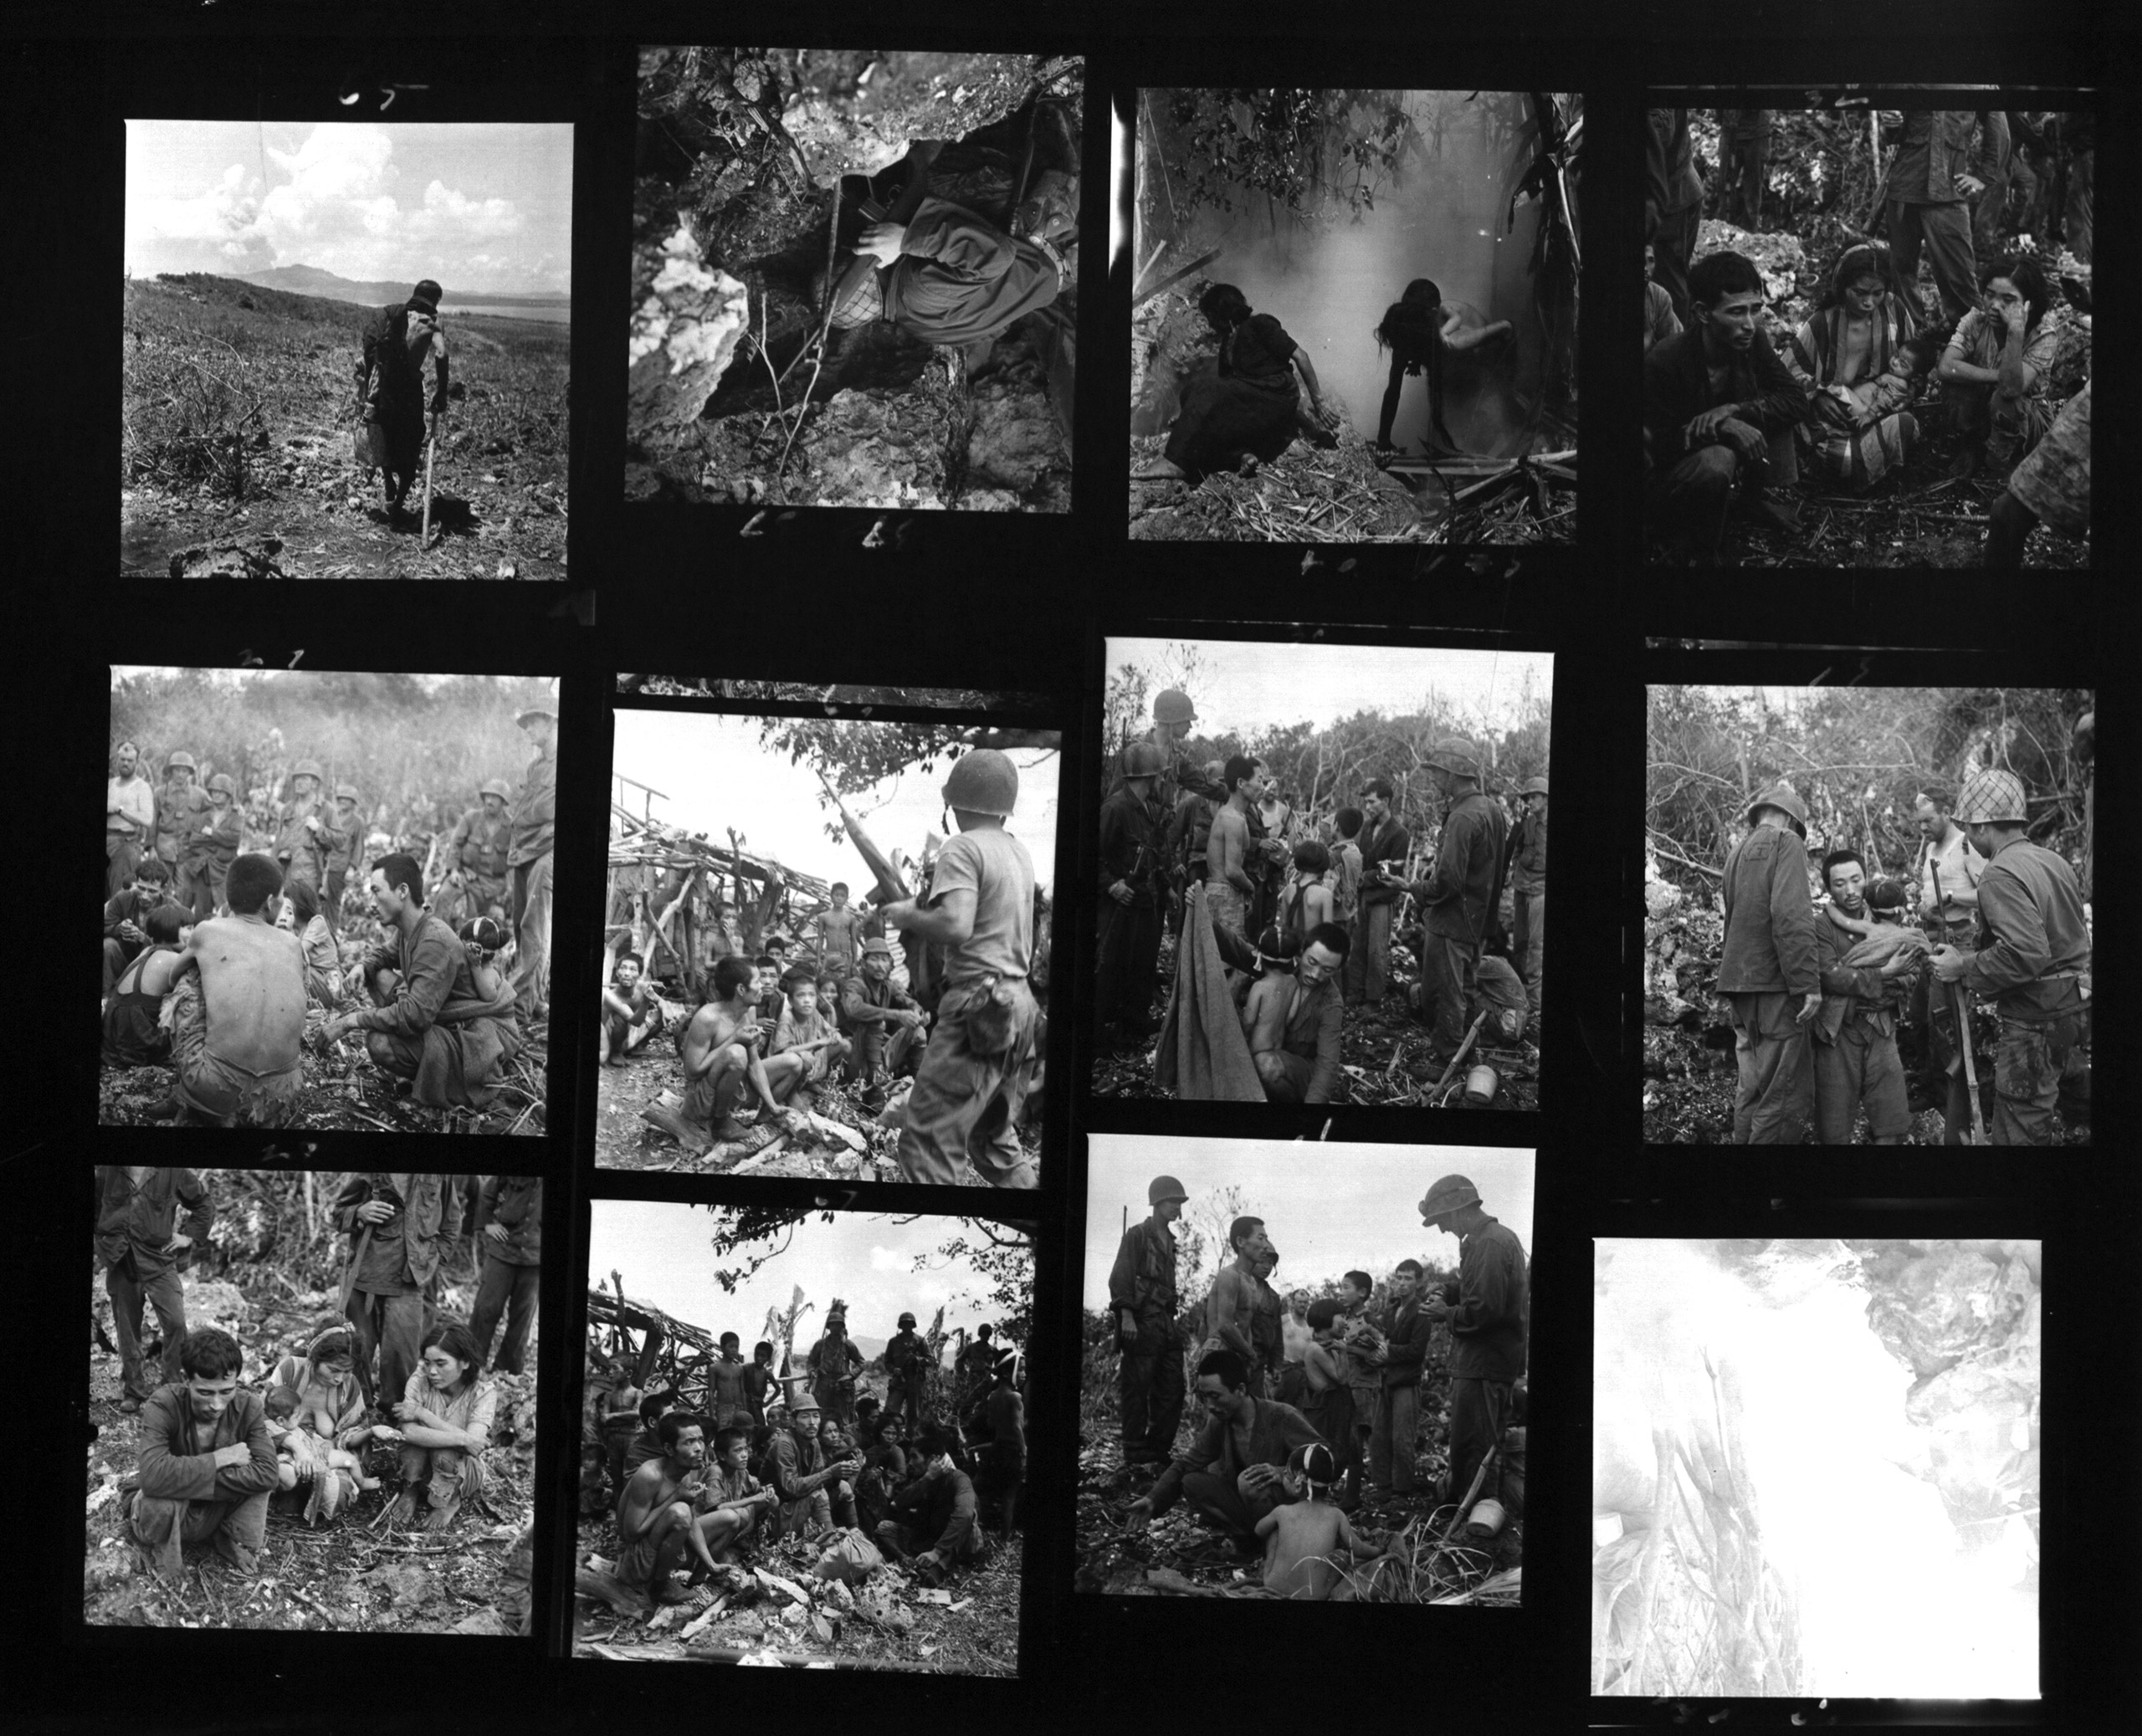 World War II Battle of Saipan photographed by W. Eugene Smith 1944.